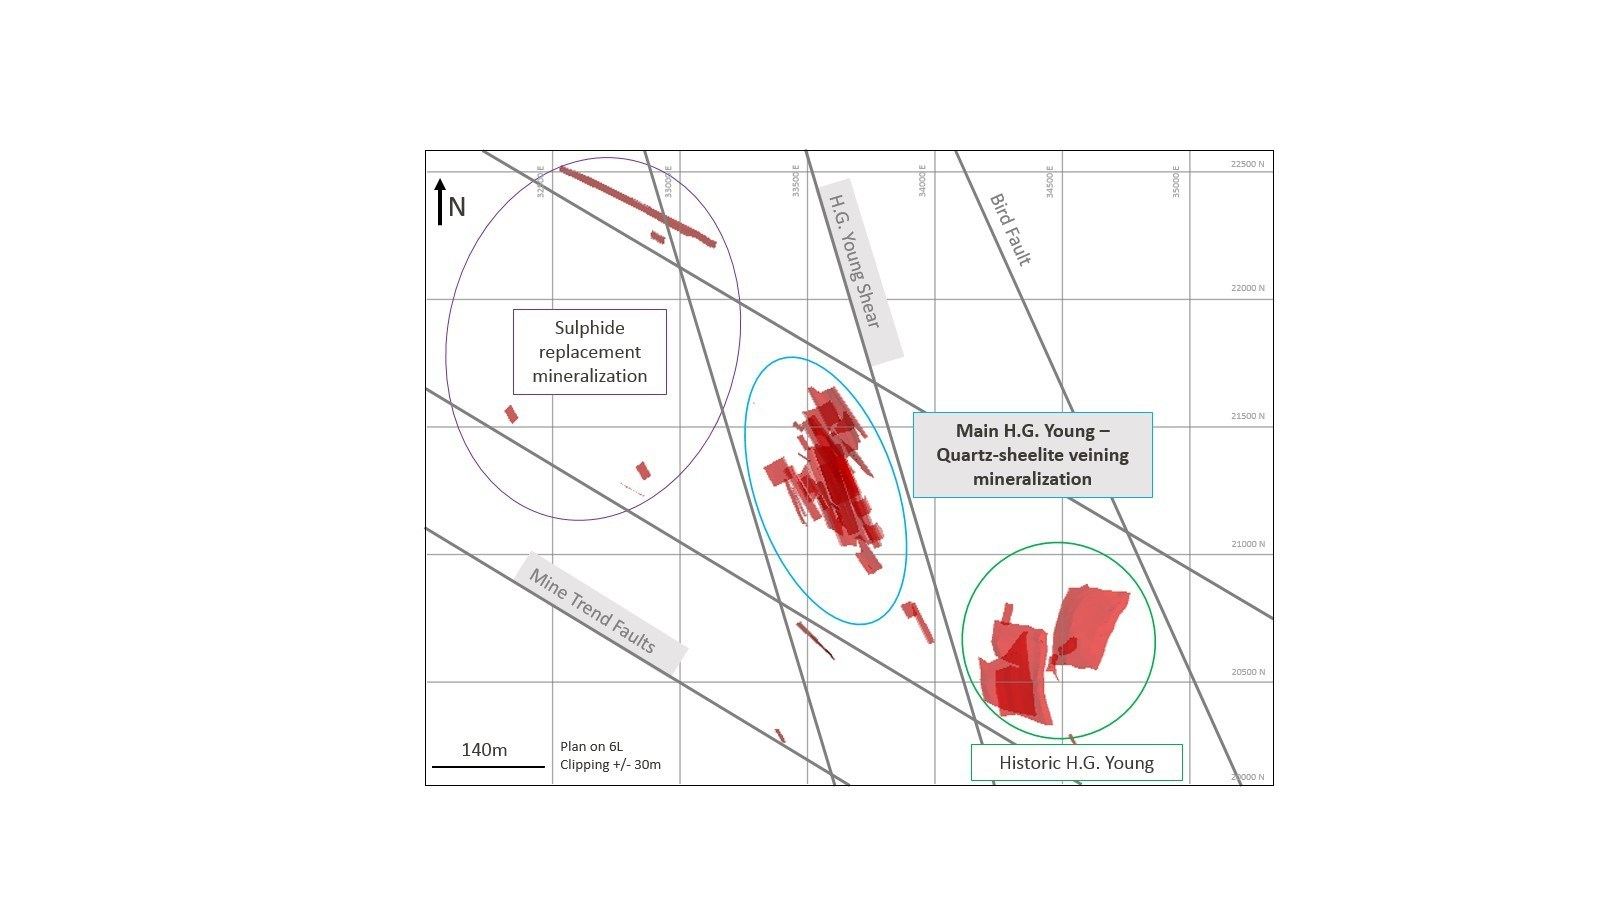 Figure 7: Plan of 8 level, HG Young showing the three distinct mineralization styles present with the structurally bounding HG Young Shear and the Mine Trend Faults. (CNW Group/Goldcorp Inc.)